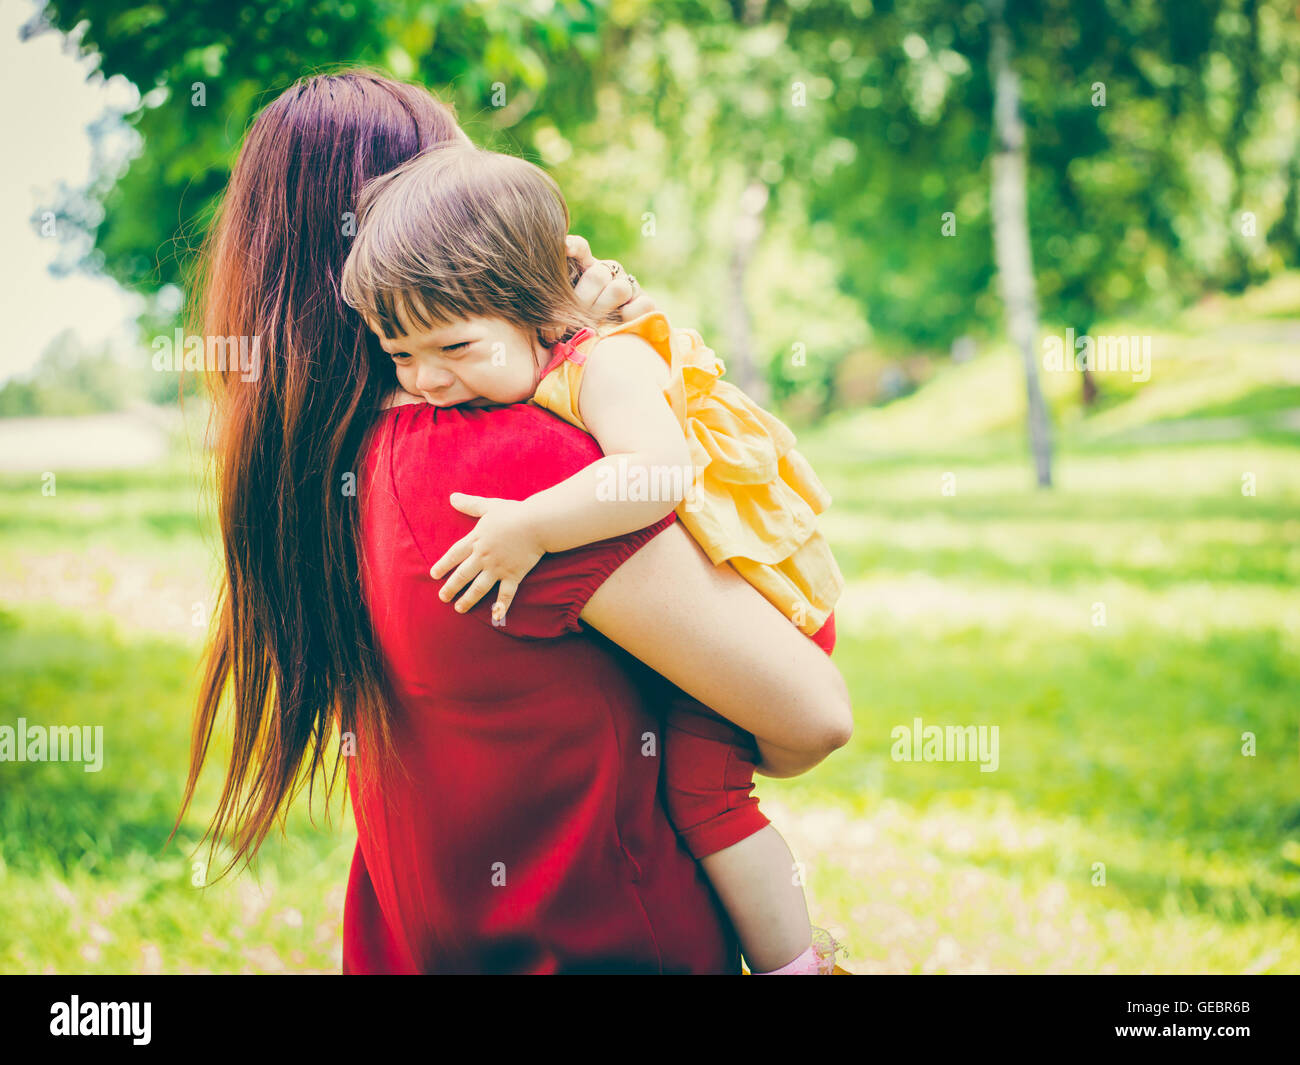 Mother holding her crying cute baby girl - Stock Image